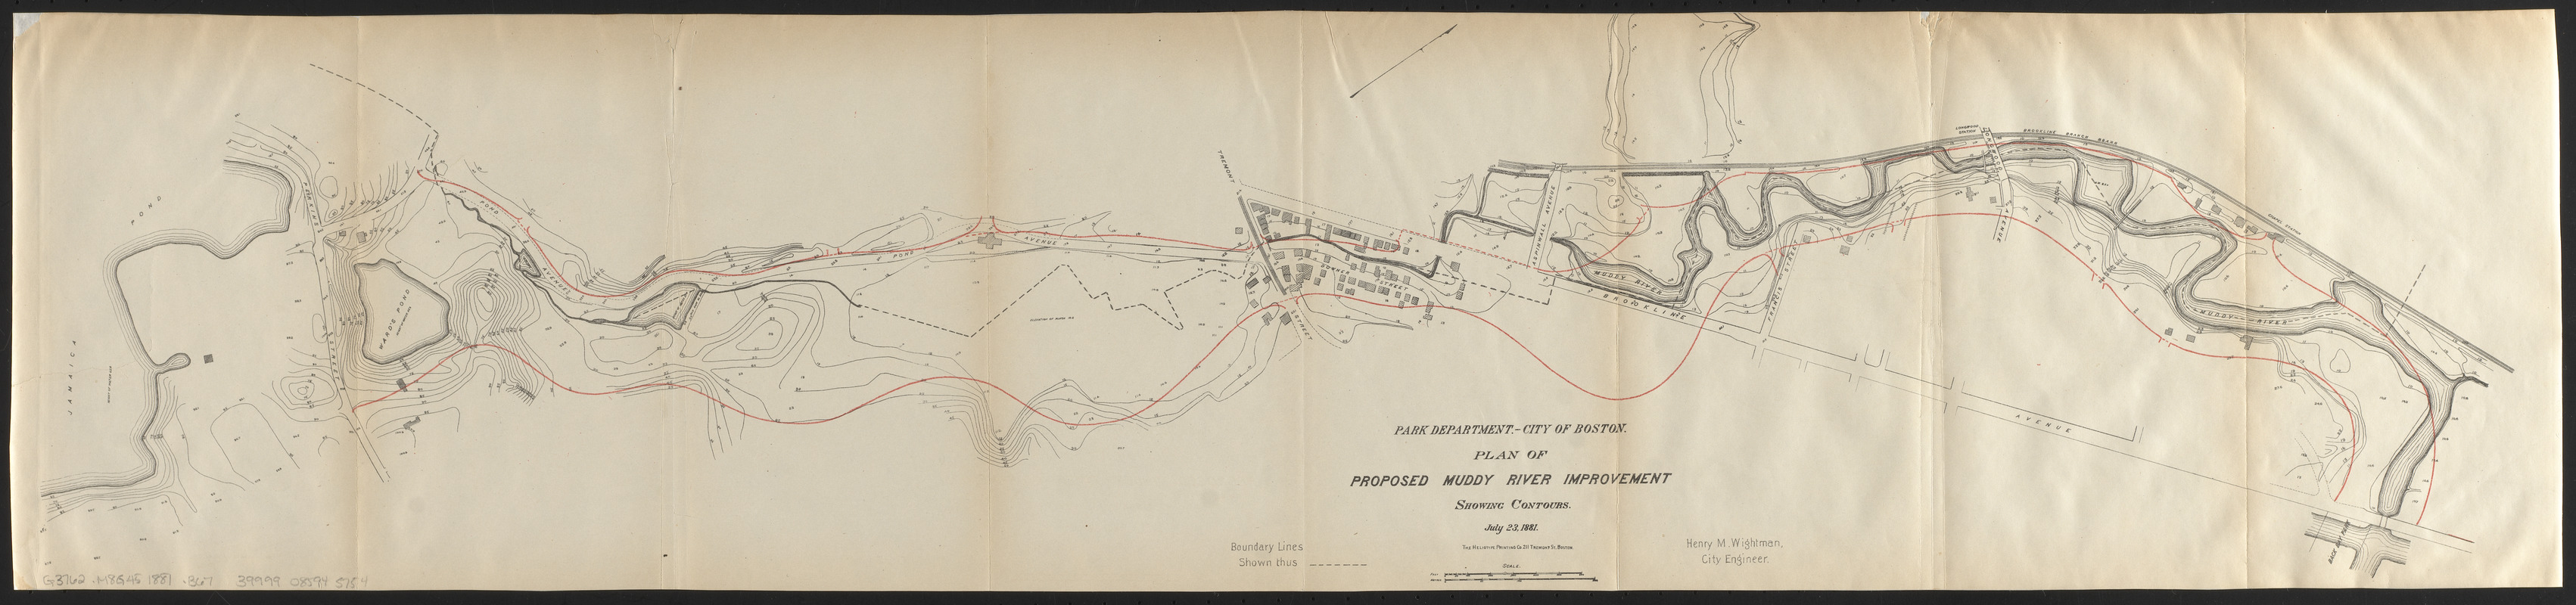 Plan of proposed Muddy River improvement, showing contours